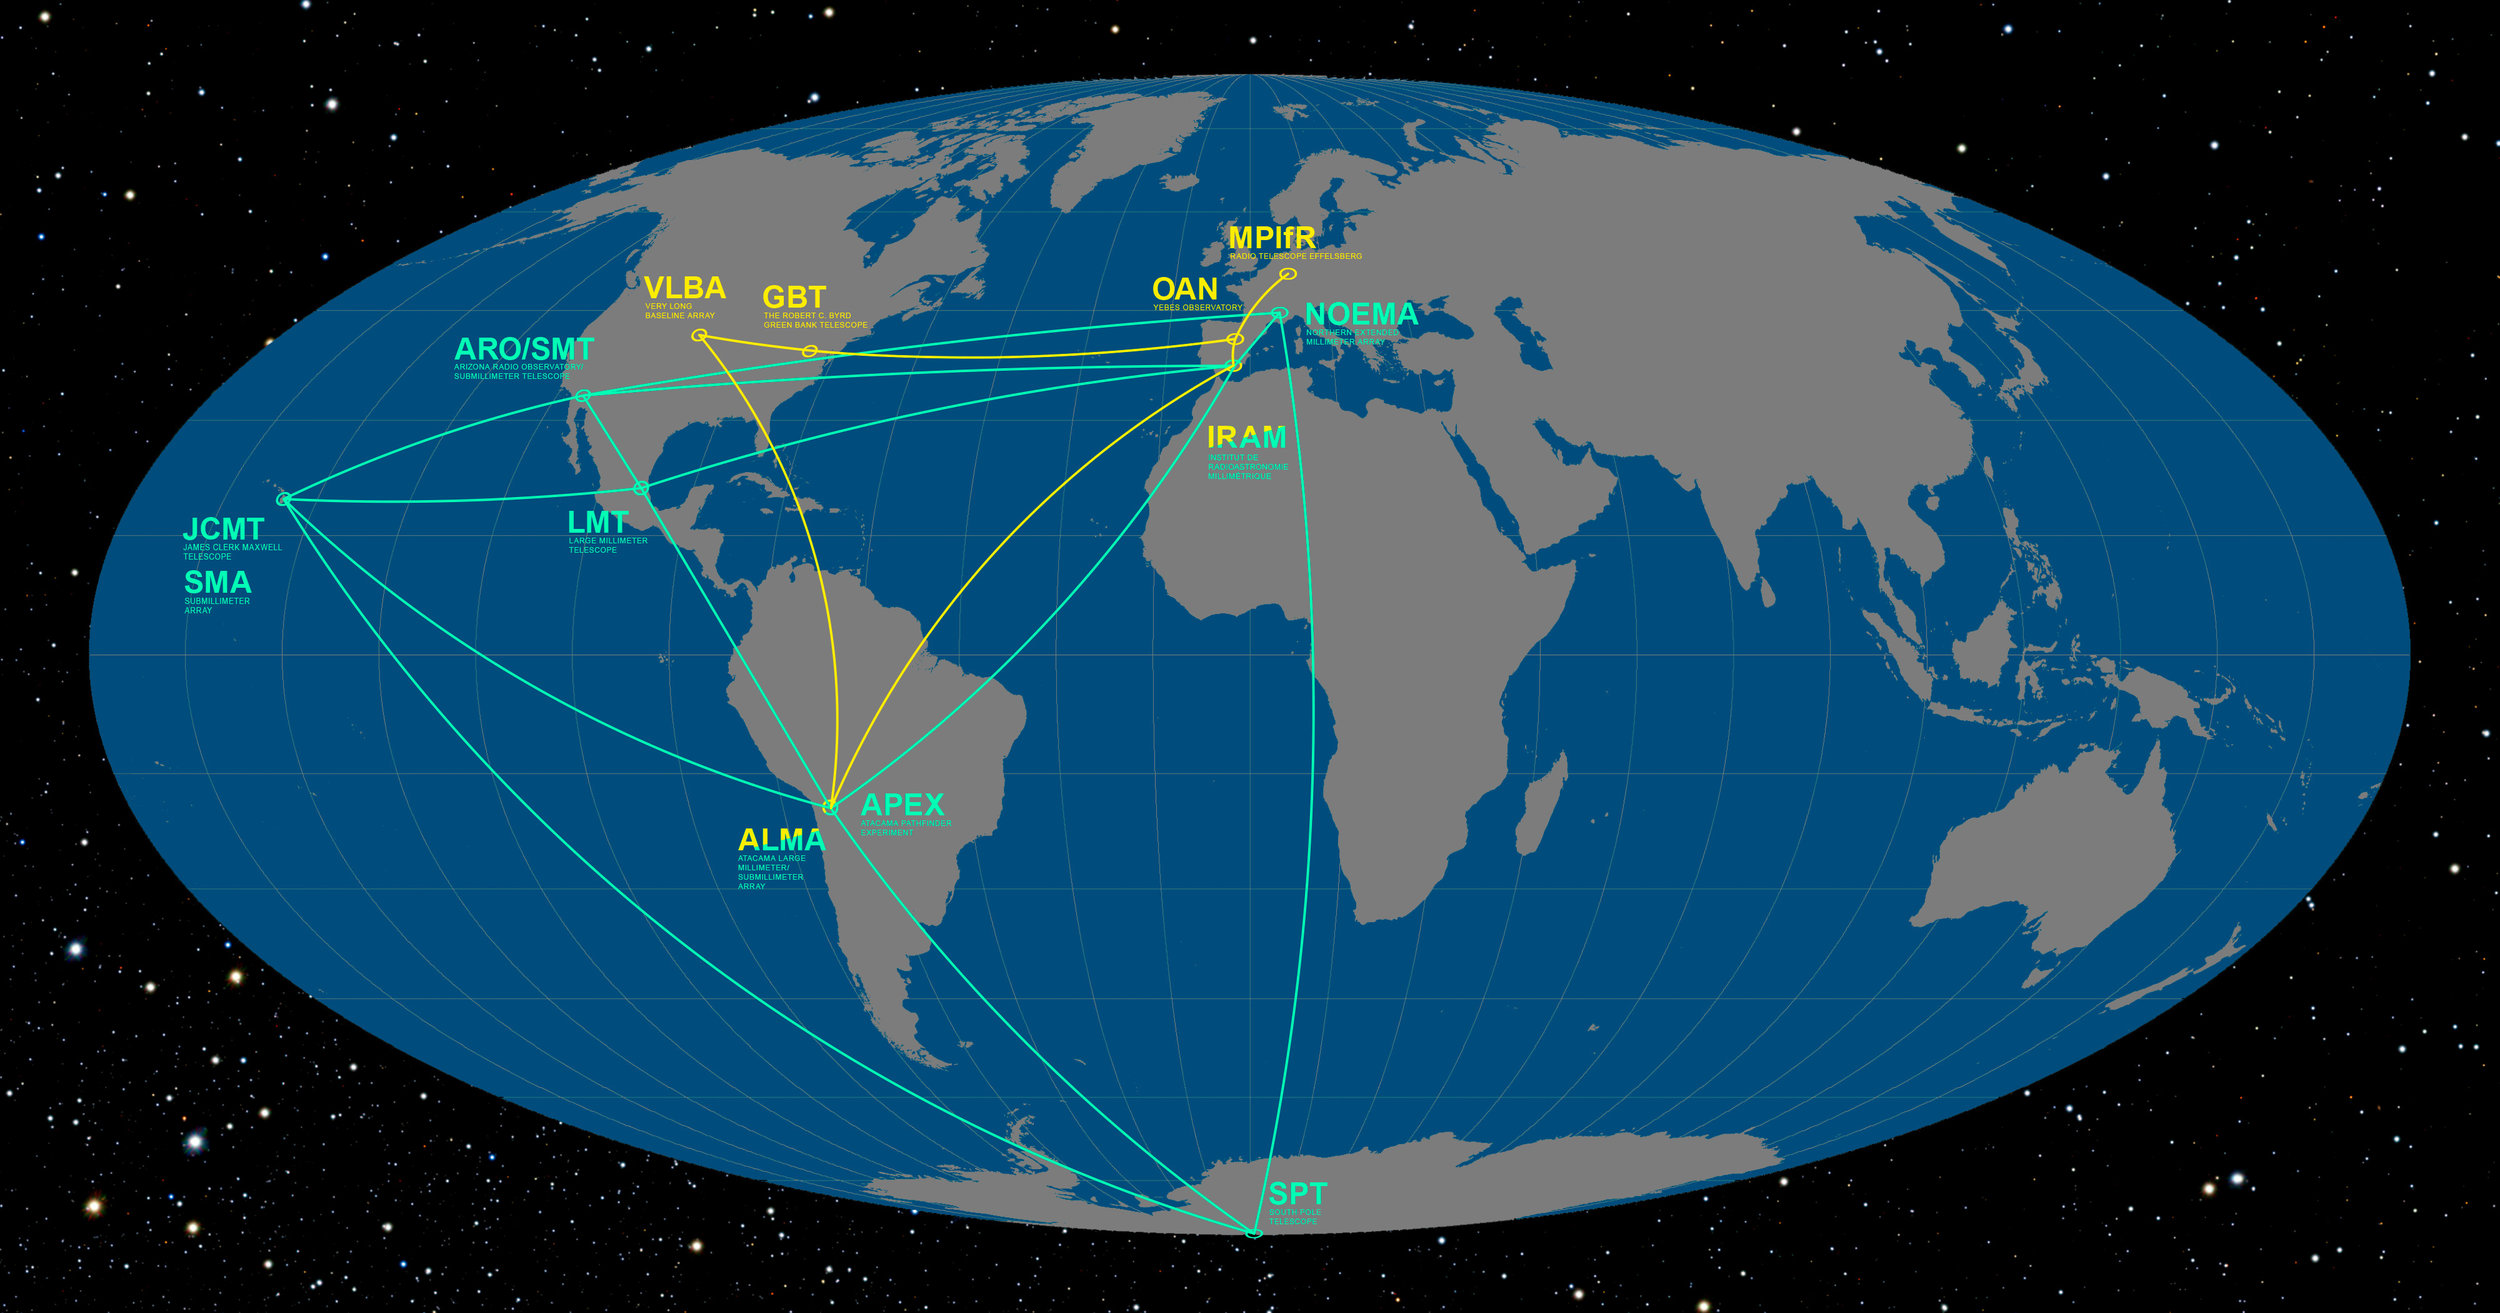 the_event_horizon_telescope_and_global_mm-vlbi_array_on_the_earth.jpg